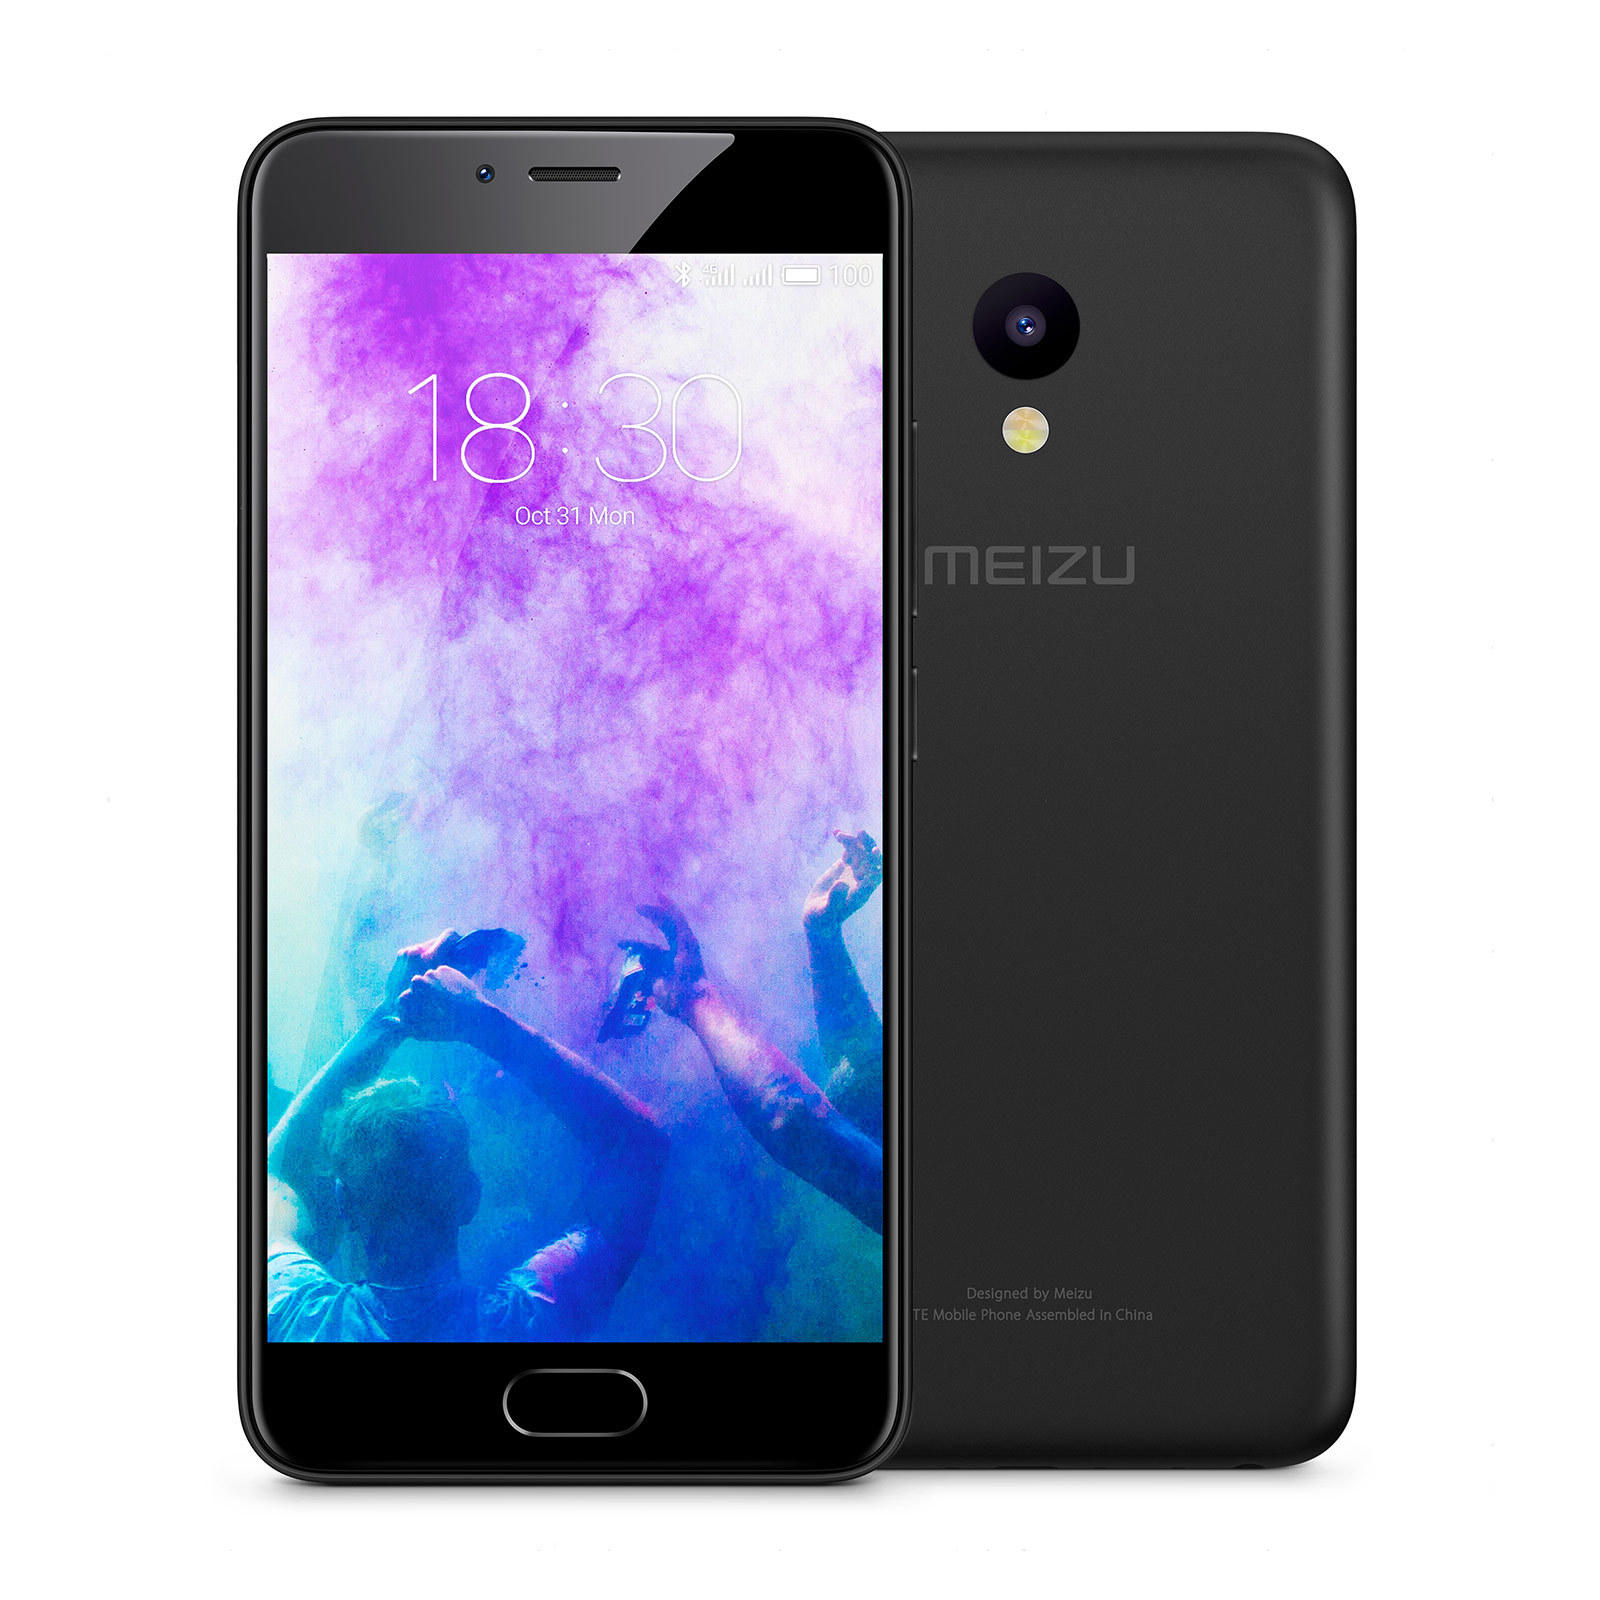 "Smartphone 5,2"" HD IPS - 4G - 16 Go - Android 6.0 - Double SIM - FingerPrint"